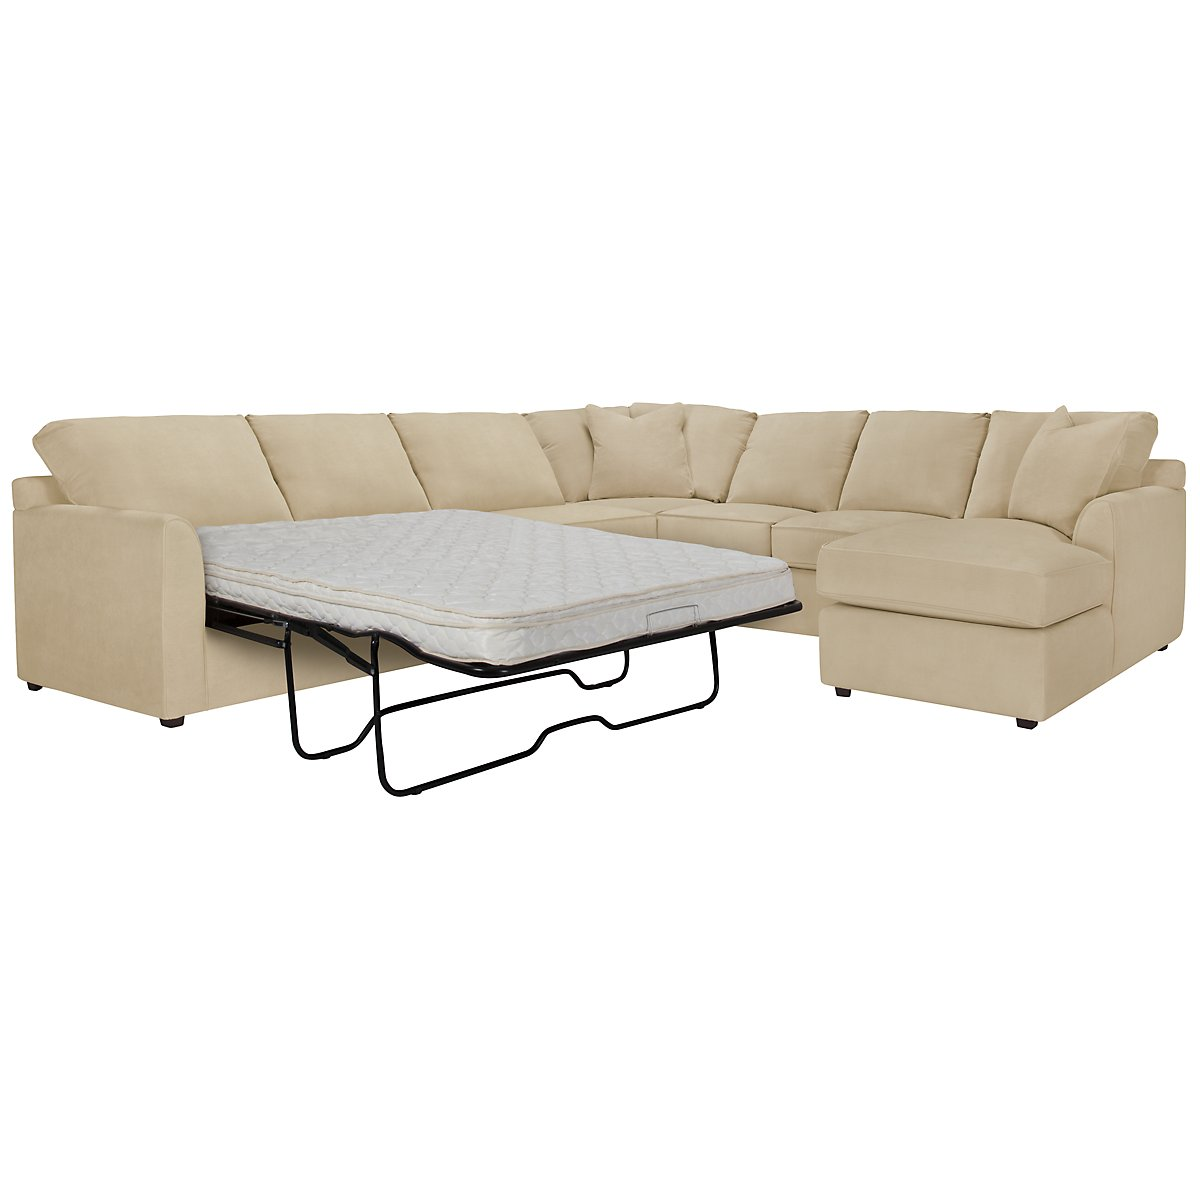 Express3 Light Beige Microfiber Right Chaise Innerspring Sleeper Sectional